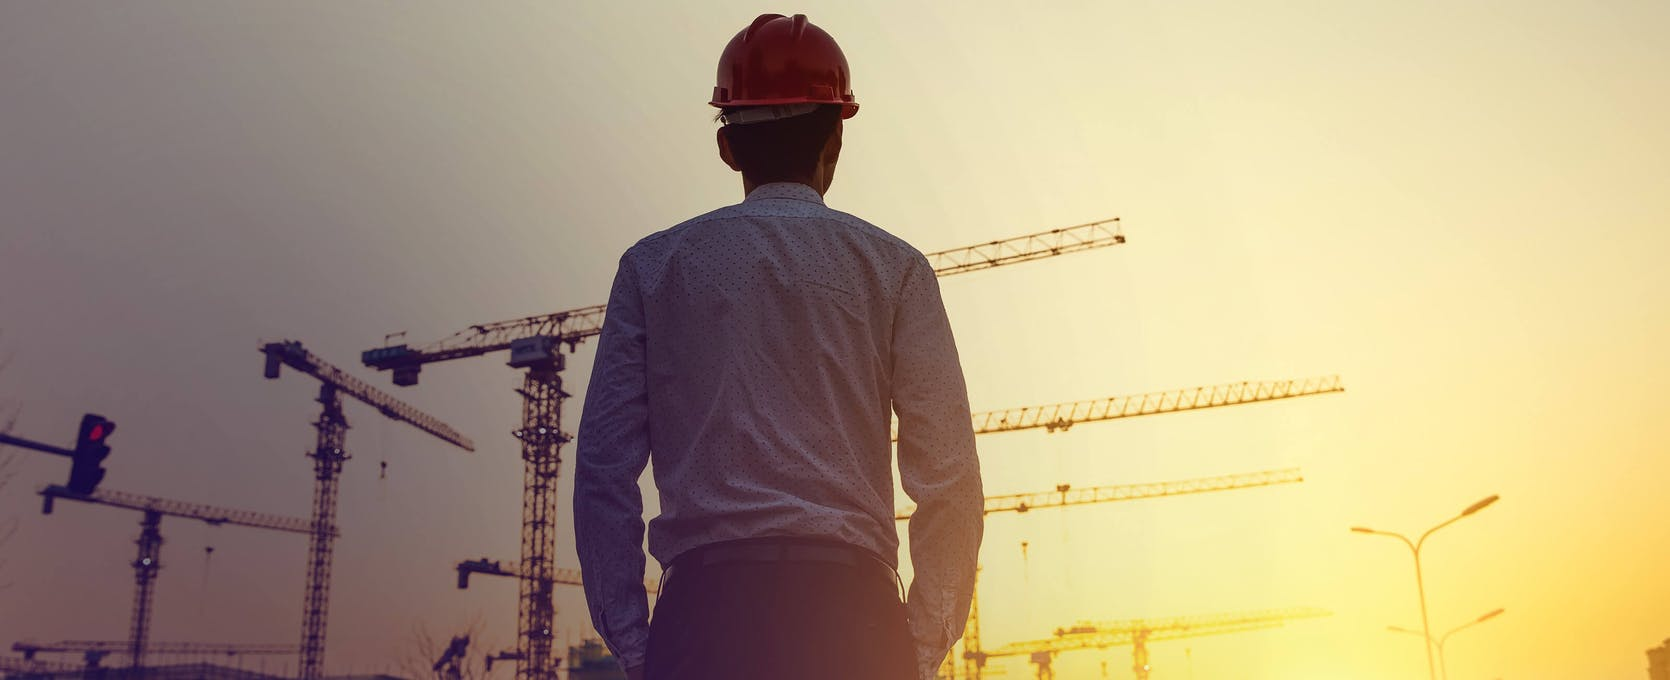 Contractor looks at construction site while considering project finance